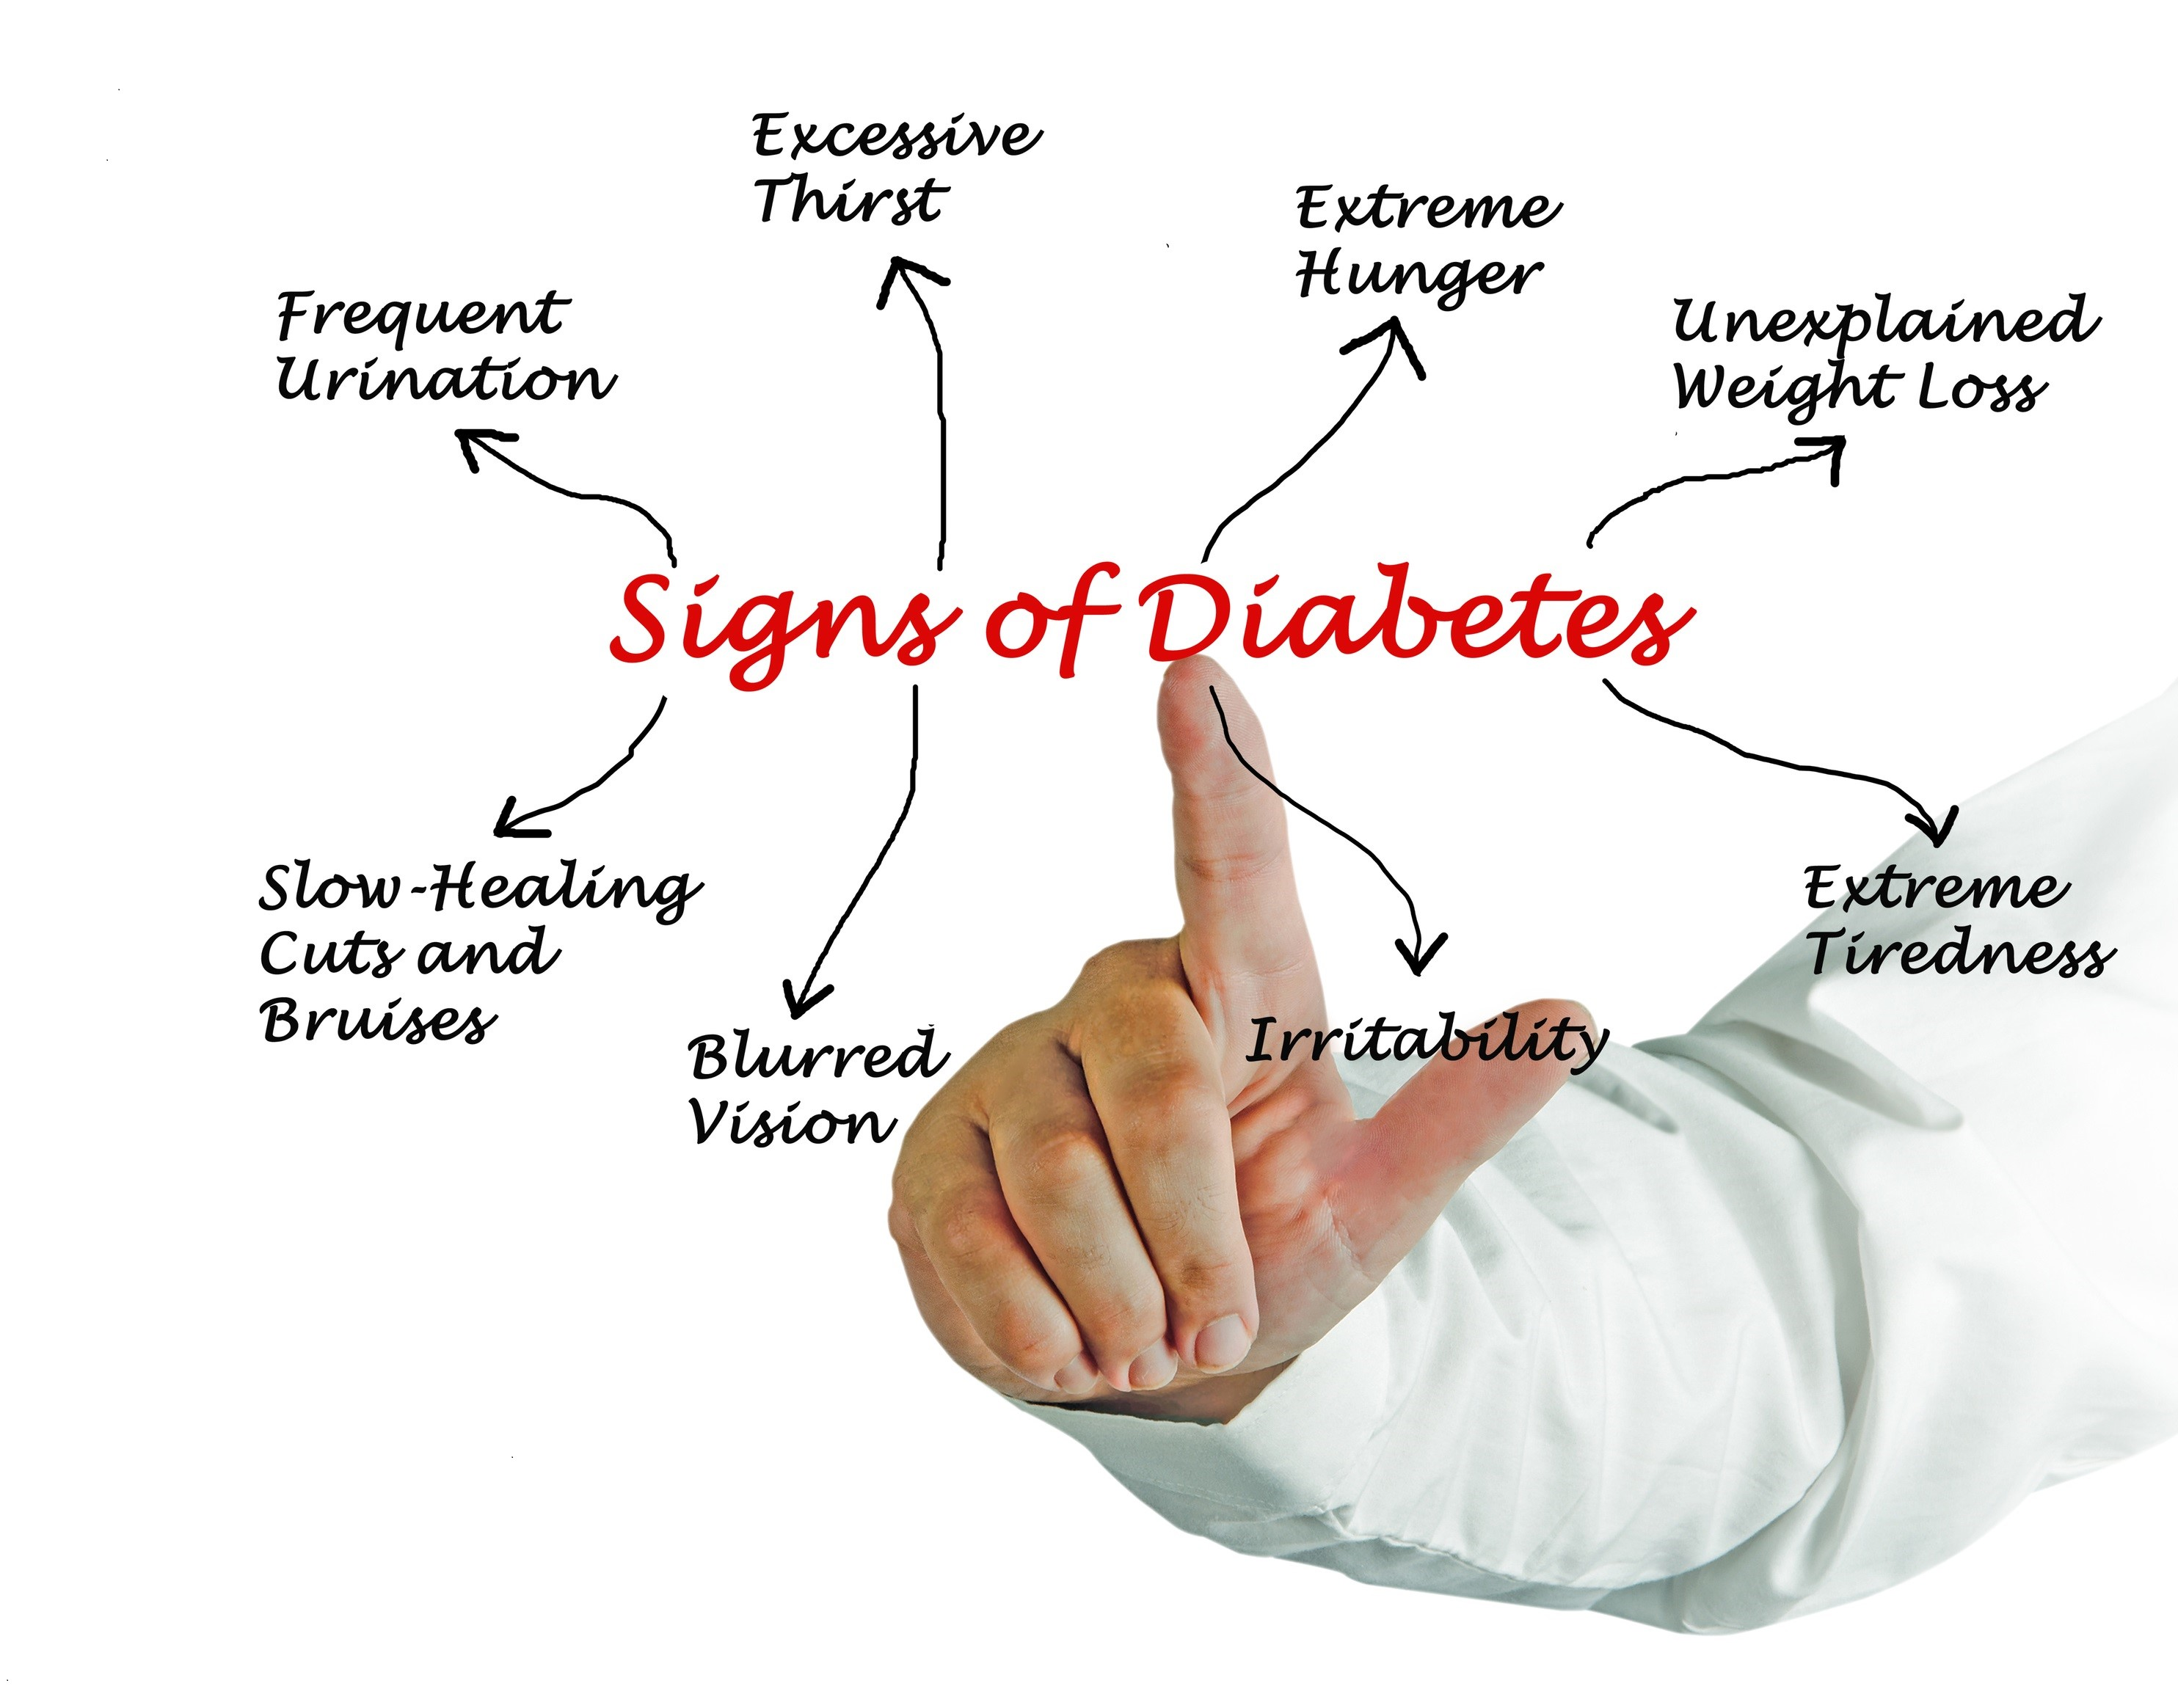 Signs of Diabetes Chart